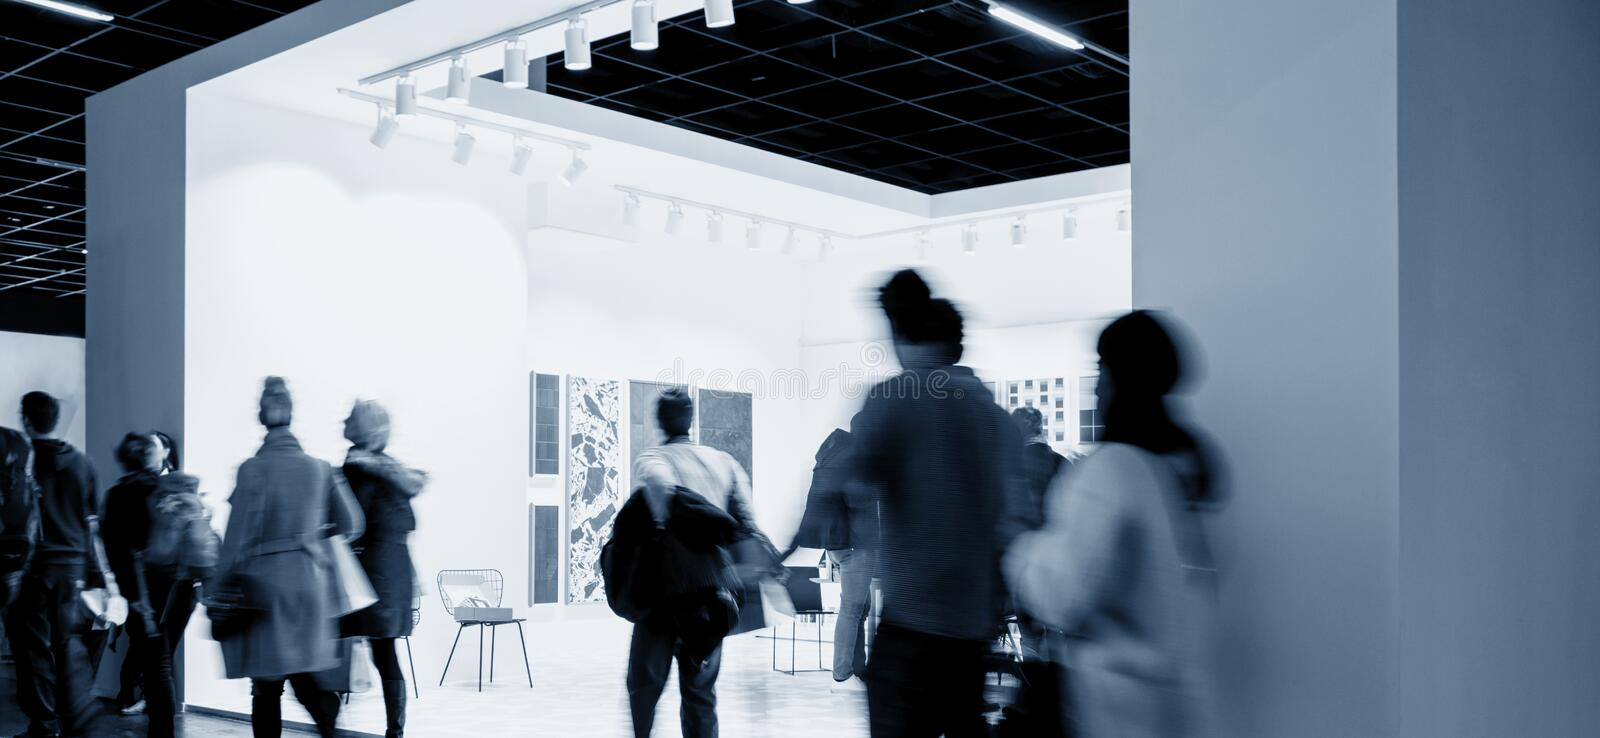 Business people crowd at an trade show booth. Crowd of people walking in a modern trade show booth. ideal for websites and magazines layouts stock image